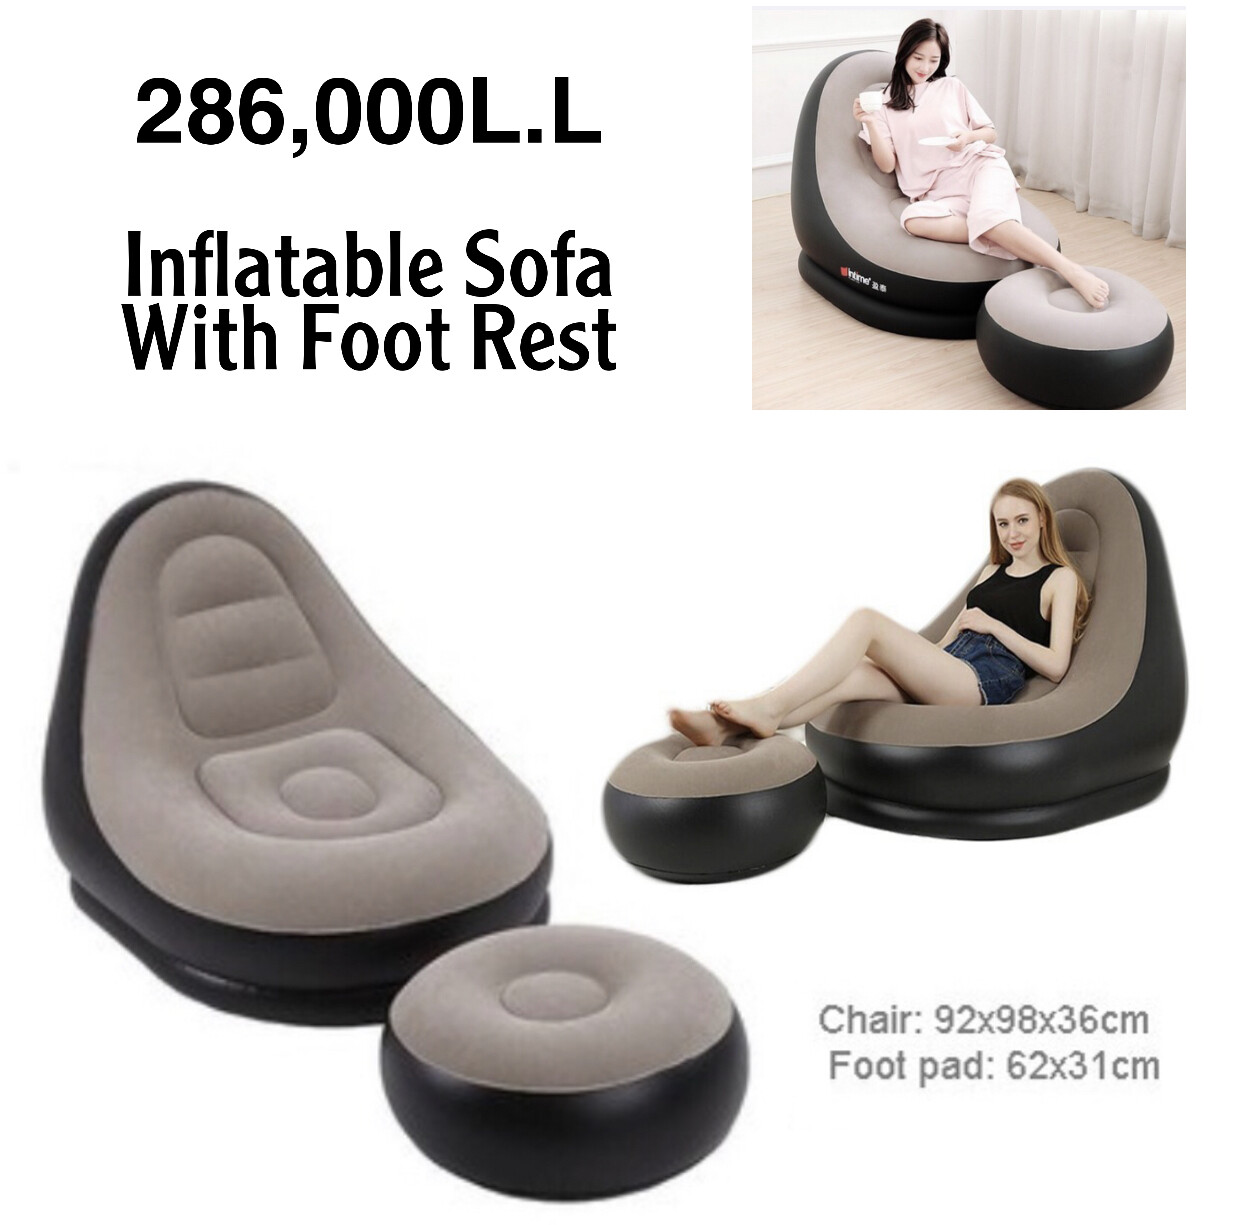 Inflatable Sofa w/Foot Rest